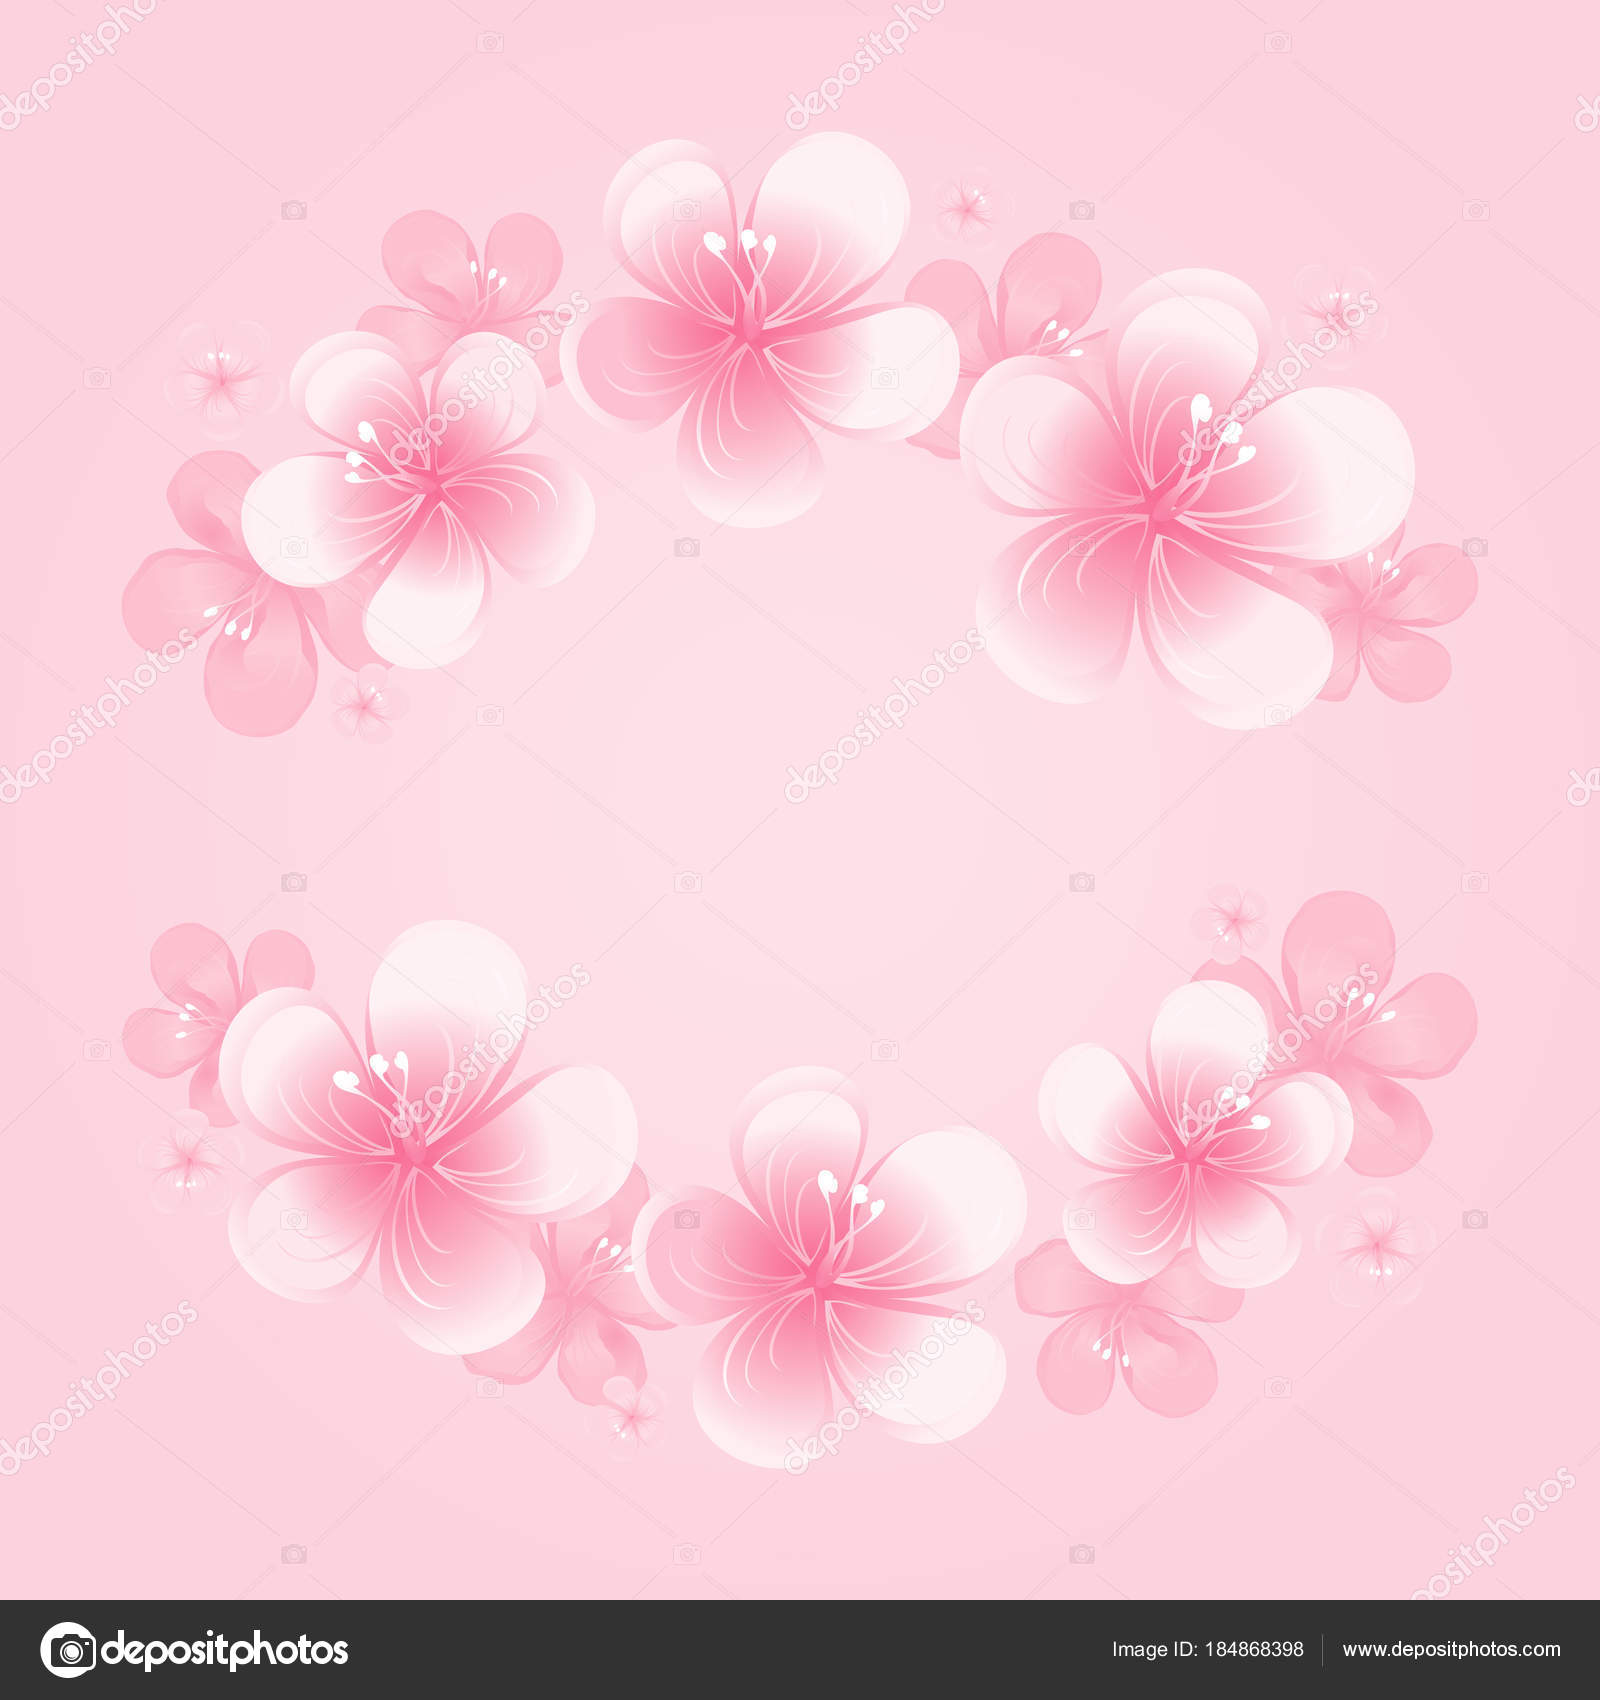 Light Pink Flowers Frame Isolated Pink Background Apple Tree Flowers U2014  Stock Vector